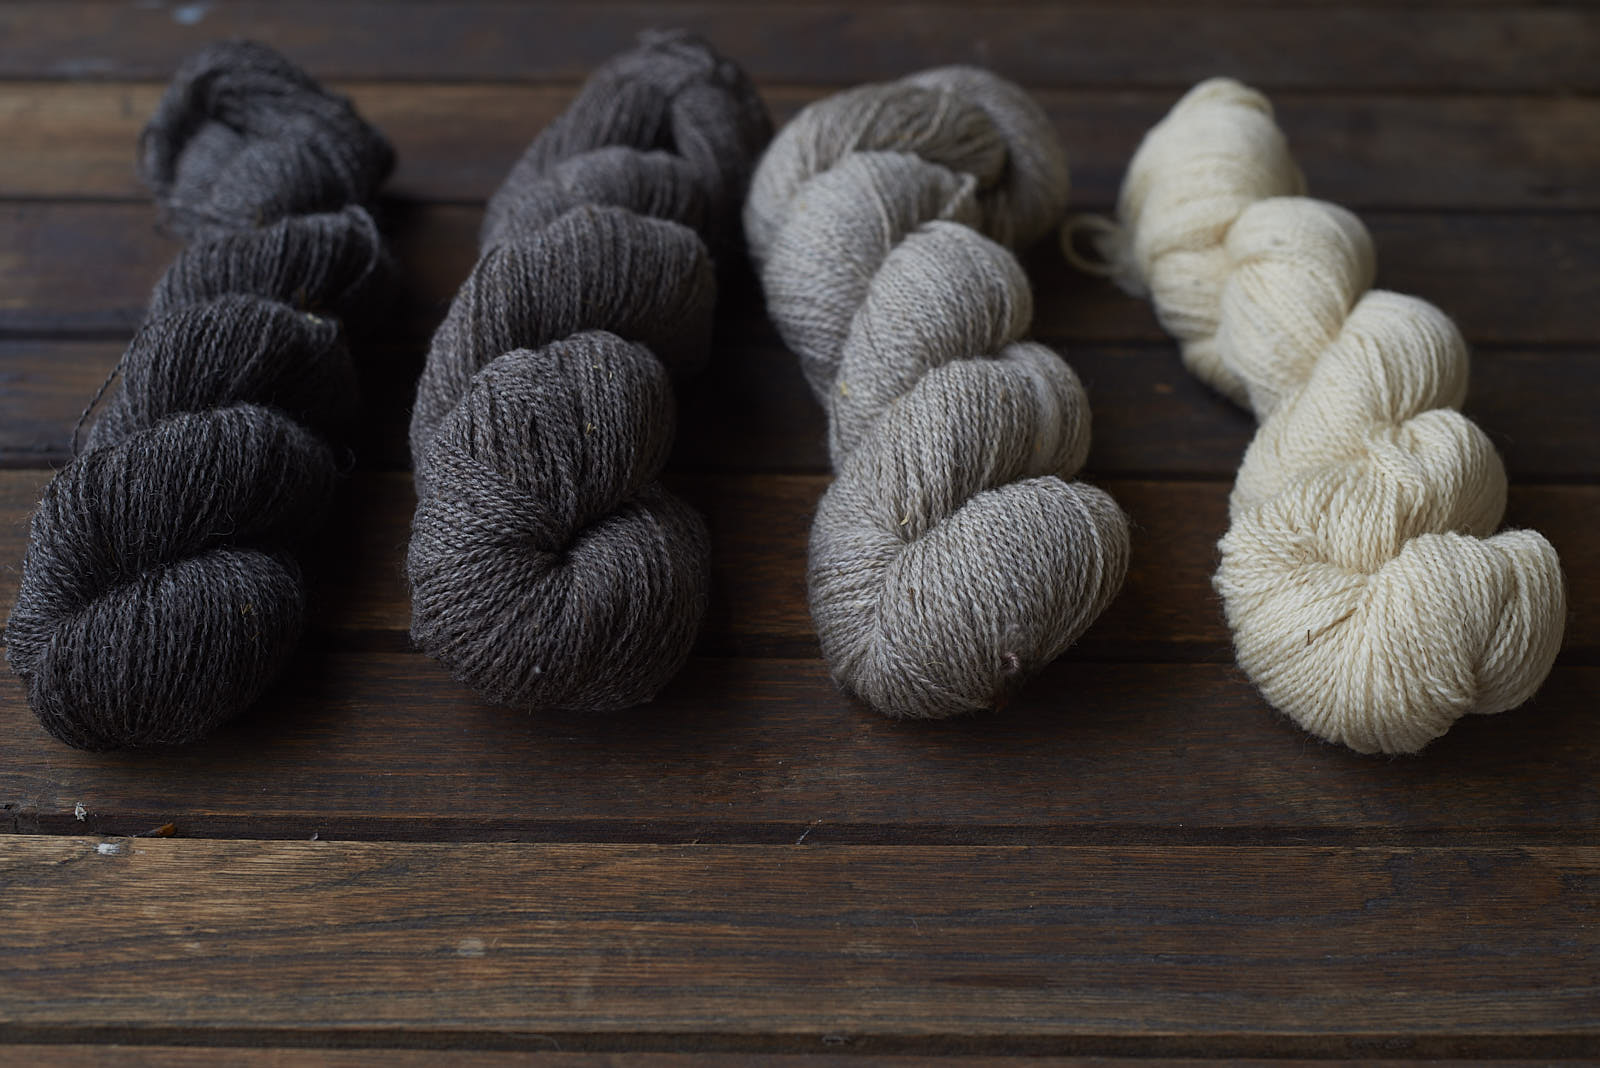 Persephone in it's many natural shades. We're dyeing over all of these to create a rich and complex palette!